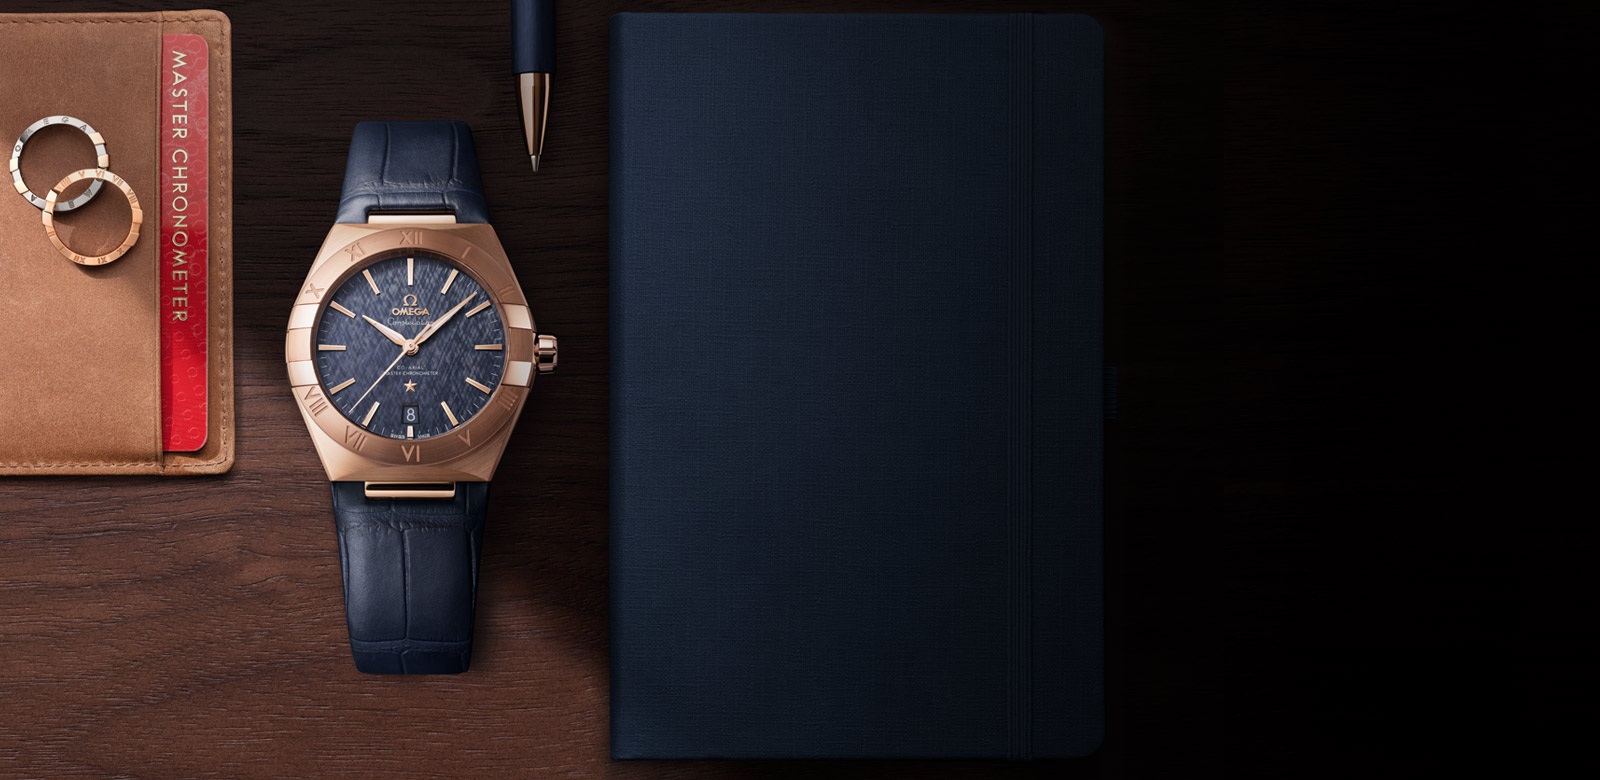 Constellation Gents' Collection - Sedna™ gold on leather strap - 13153392003001